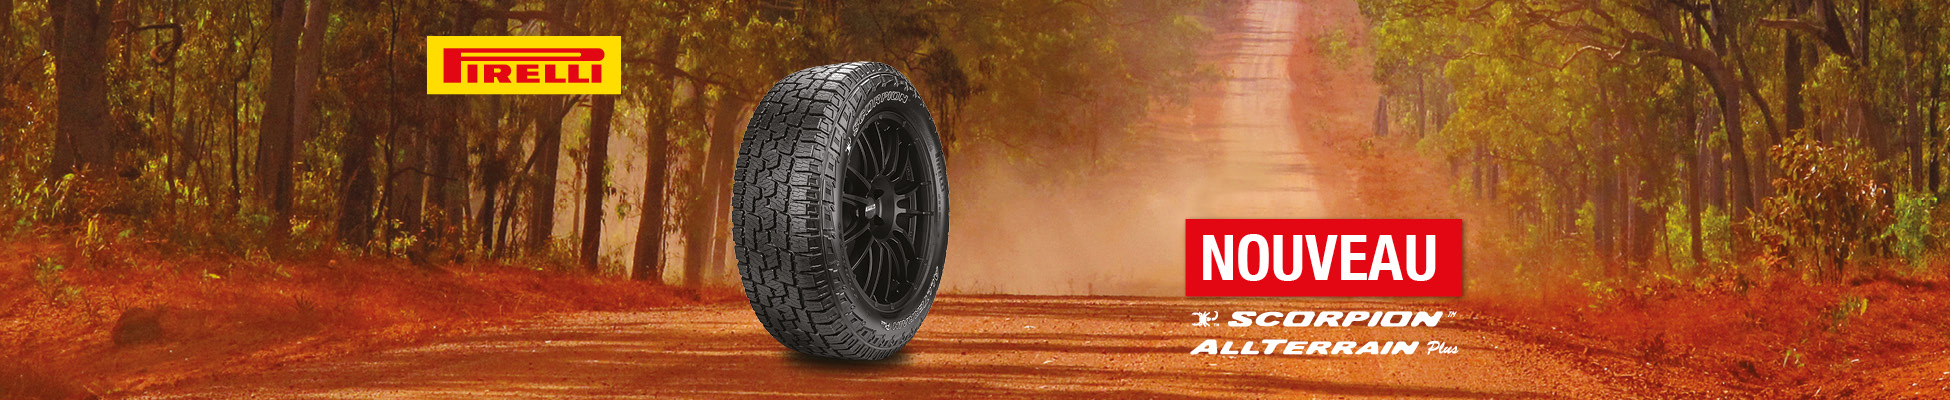 Pneu Pick-up Pirelli Scorpion All Terrain Plus